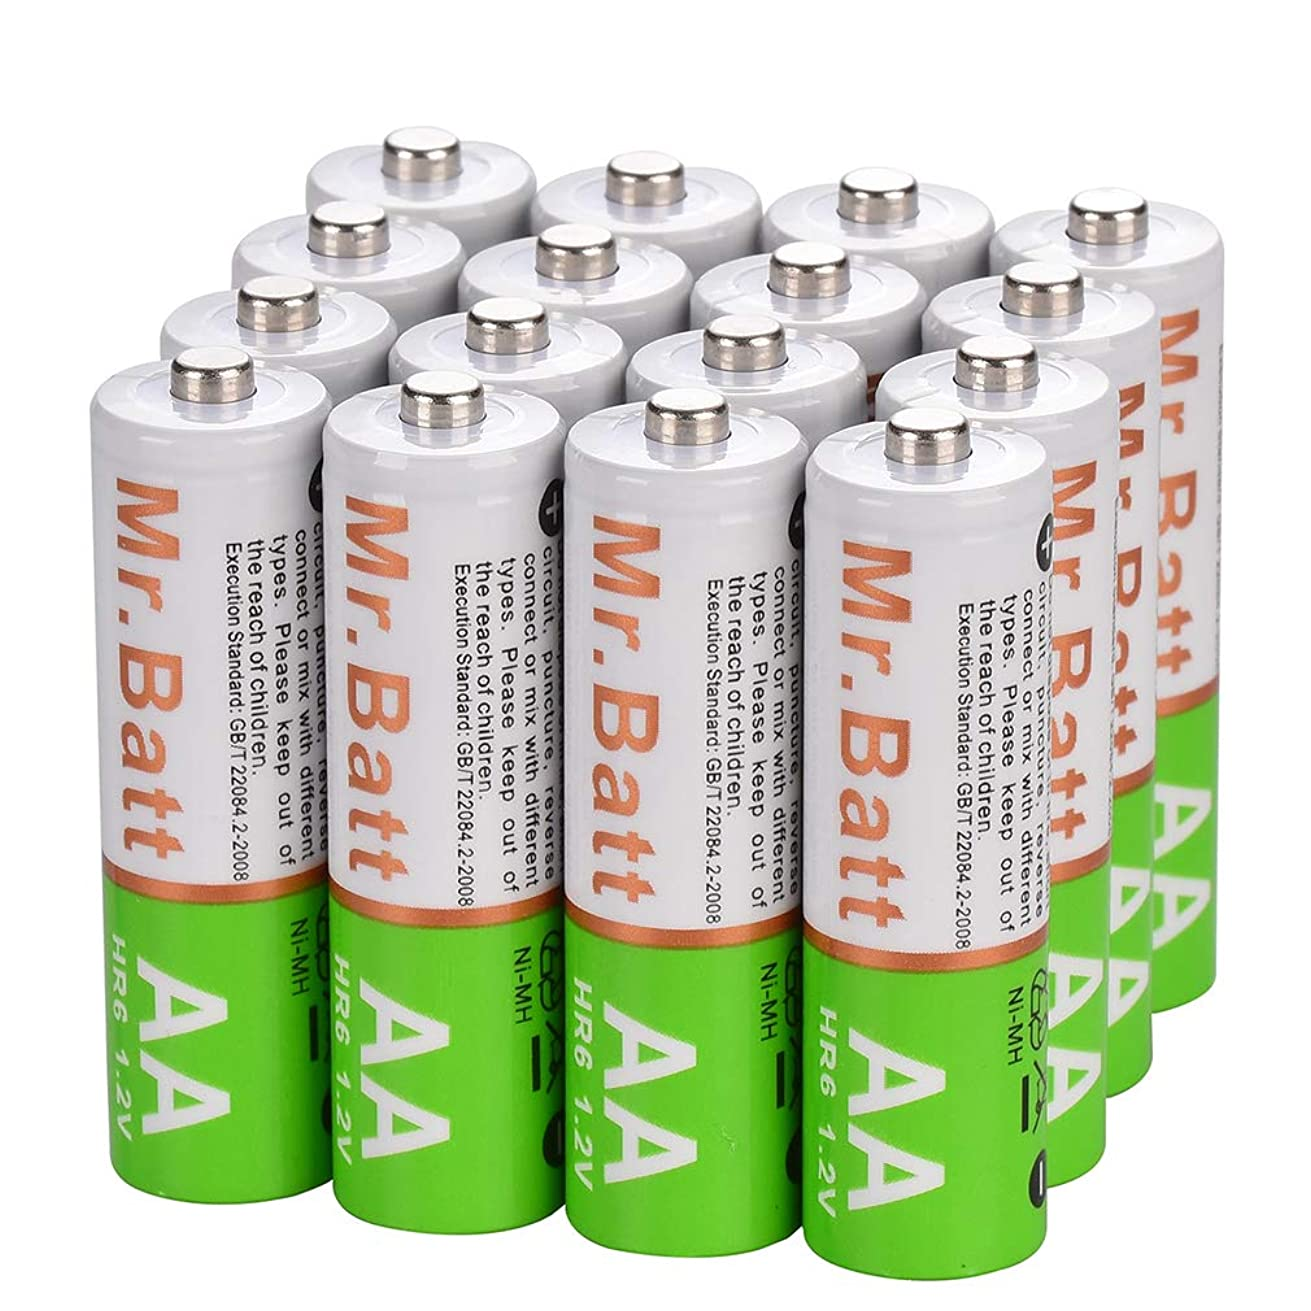 Mr.Batt NiMH Rechargeable AA Batteries Pre-Charged, 1600mA (16 Pack)